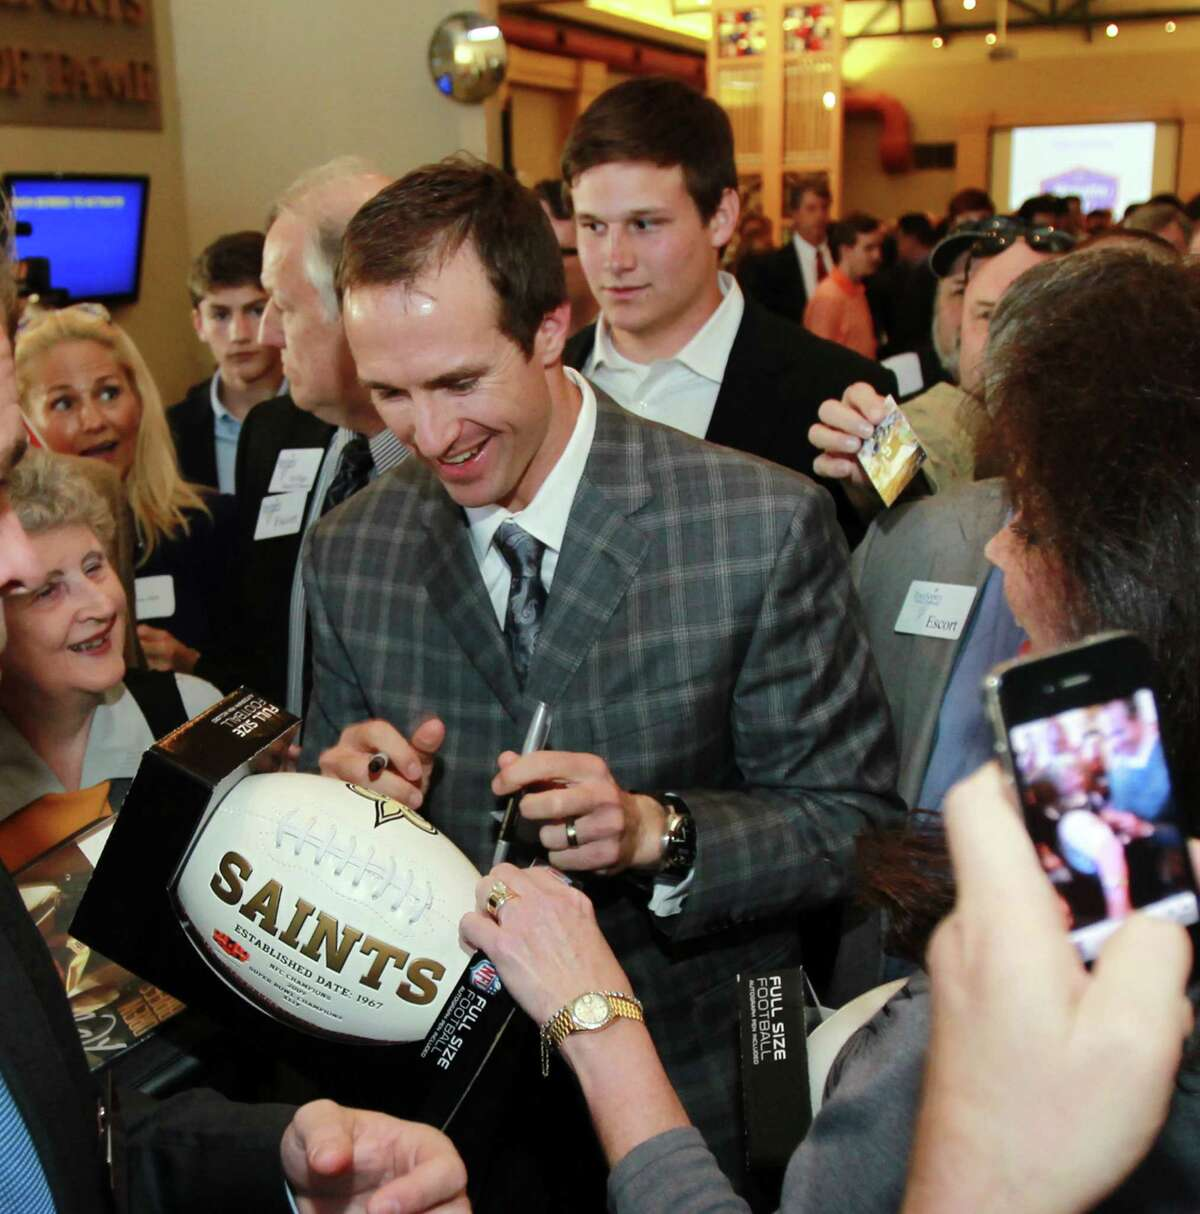 Before leading the Saints to a Super Bowl win in 2010, new Texas Sports Hall of Fame inductee Drew Brees led Austin Westlake to a state title in 1996.